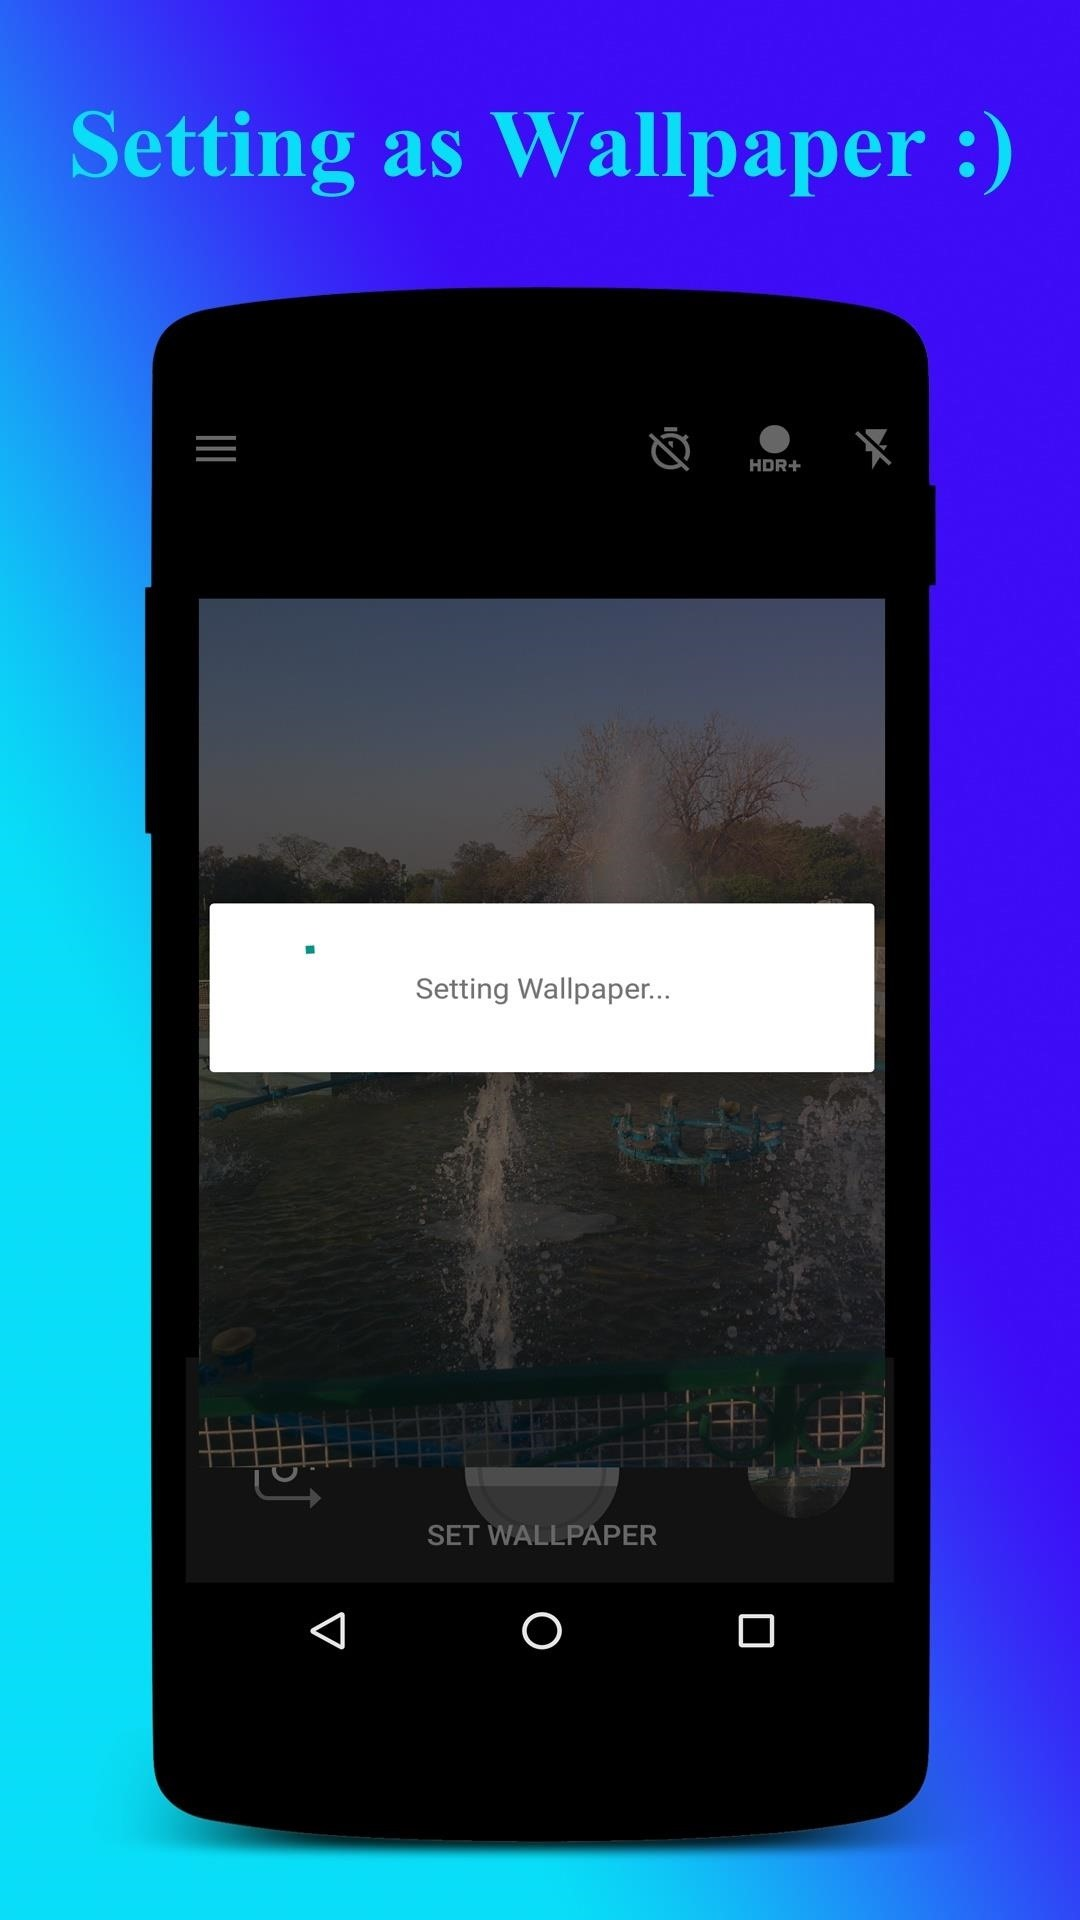 if both crop and ask before set is off then the picture directly sets as wallpaper there is no pop upnotification or cropping screen